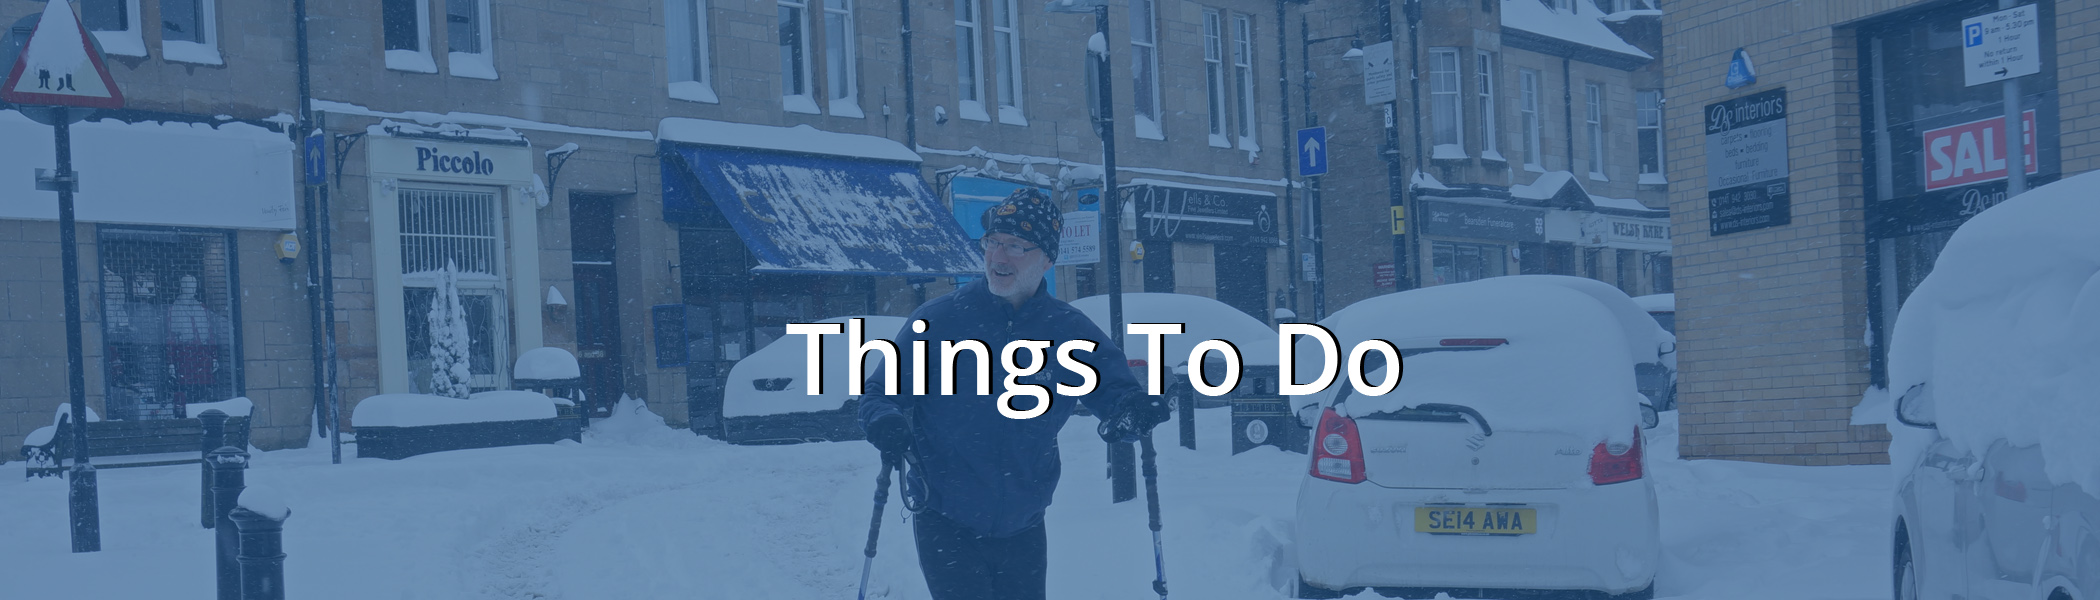 Bearsden Loves Local Things To Do